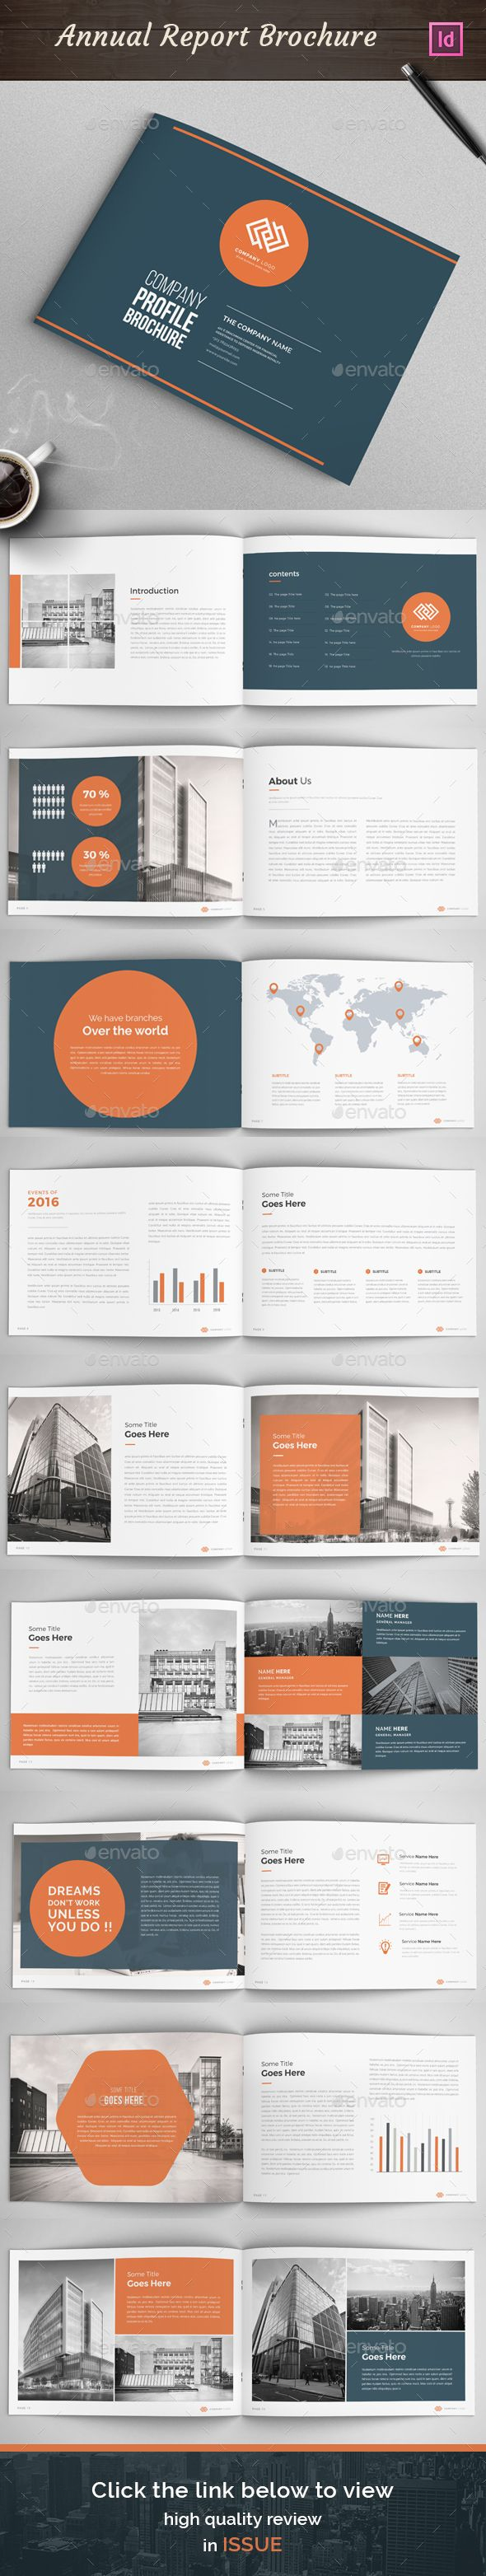 Annual Report - Company Profile - Corporate Brochures                                                                                                                                                                                 More